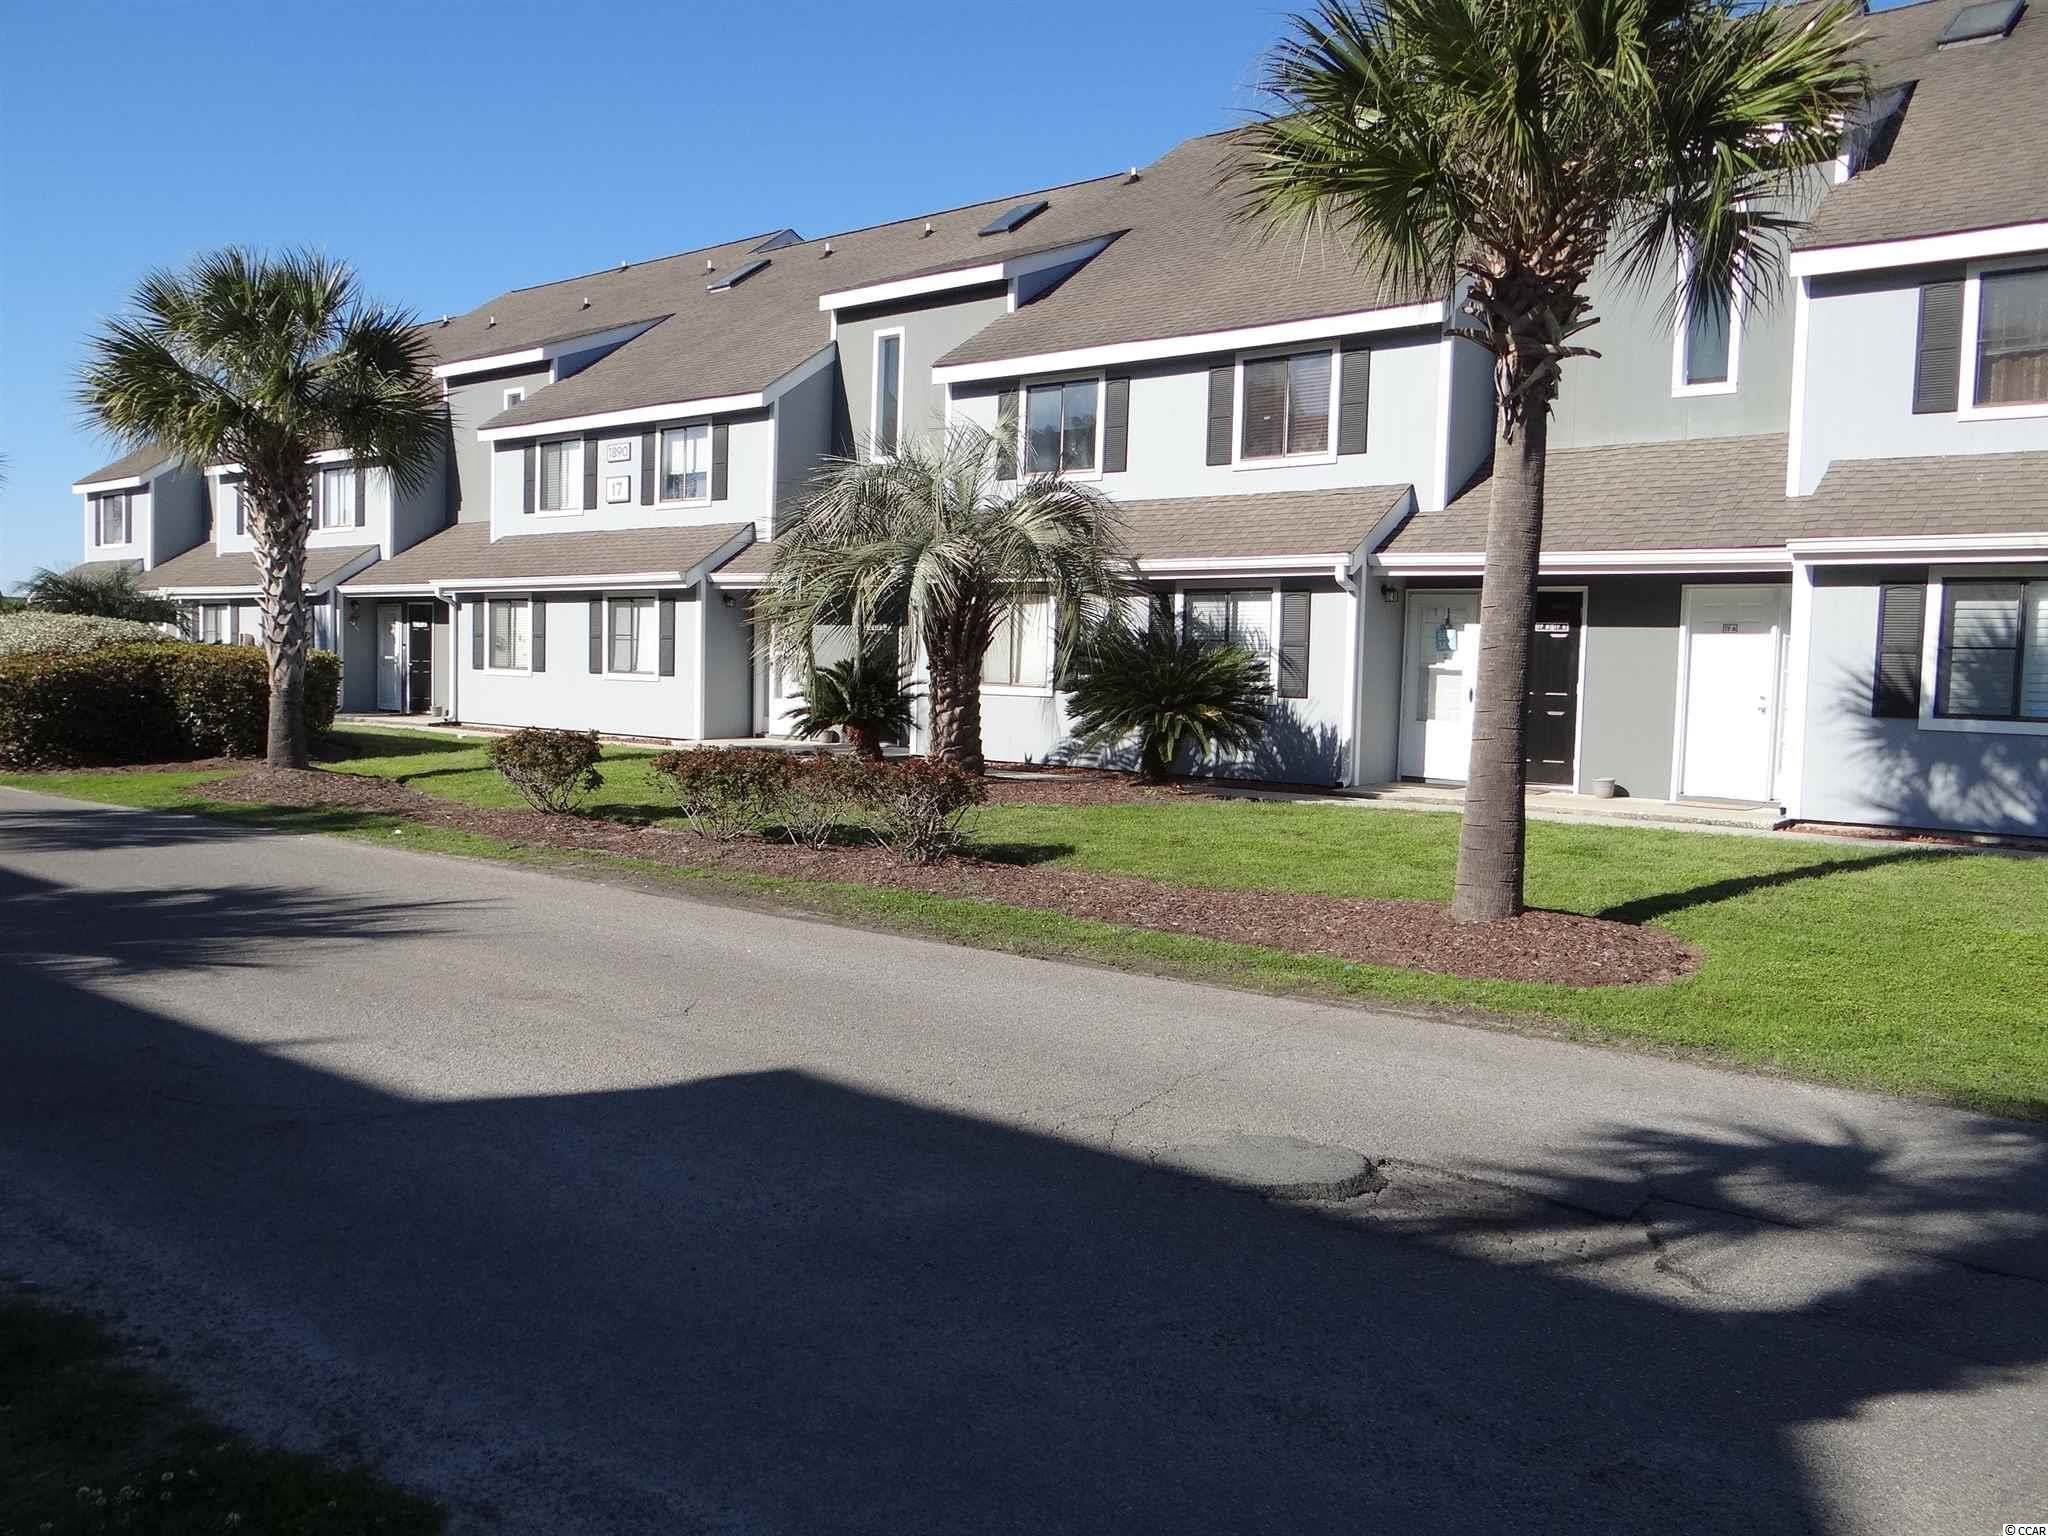 Wonderful Golf Colony Resort first floor, 2 bedroom, 1 and 1/2 bath condo right on the swimming pool. Just painted with Luxury Vinyl flooring throughout the home. Conveniently located in Deerfield Plantation of Surfside Beach, SC minutes away from the Atlantic Ocean, shopping, dining and entertainment. Entering into the condo one proceeds down the hall with two bedrooms on the left and the full bath. On the right side of the hall is a half bath and seperate storage area. Walking further leads to an open living area with kitchen, dining and seating/lounging area. Out through glass sliding doors is a screened porch overlooking the pool and landscaped area. Laundry room is off the porch with washer and dryer included. This condo is a great investment for vacation or long term rental, a second home for weekend and summer/ winter getaway to the beach or your permanent residence. The monthly HOA includes water, garbage, cable tv, internet, pool service, pest control and common area maintenance. Tennis courts and private mail box are close by. Have your real estate agent show you this great condo today.